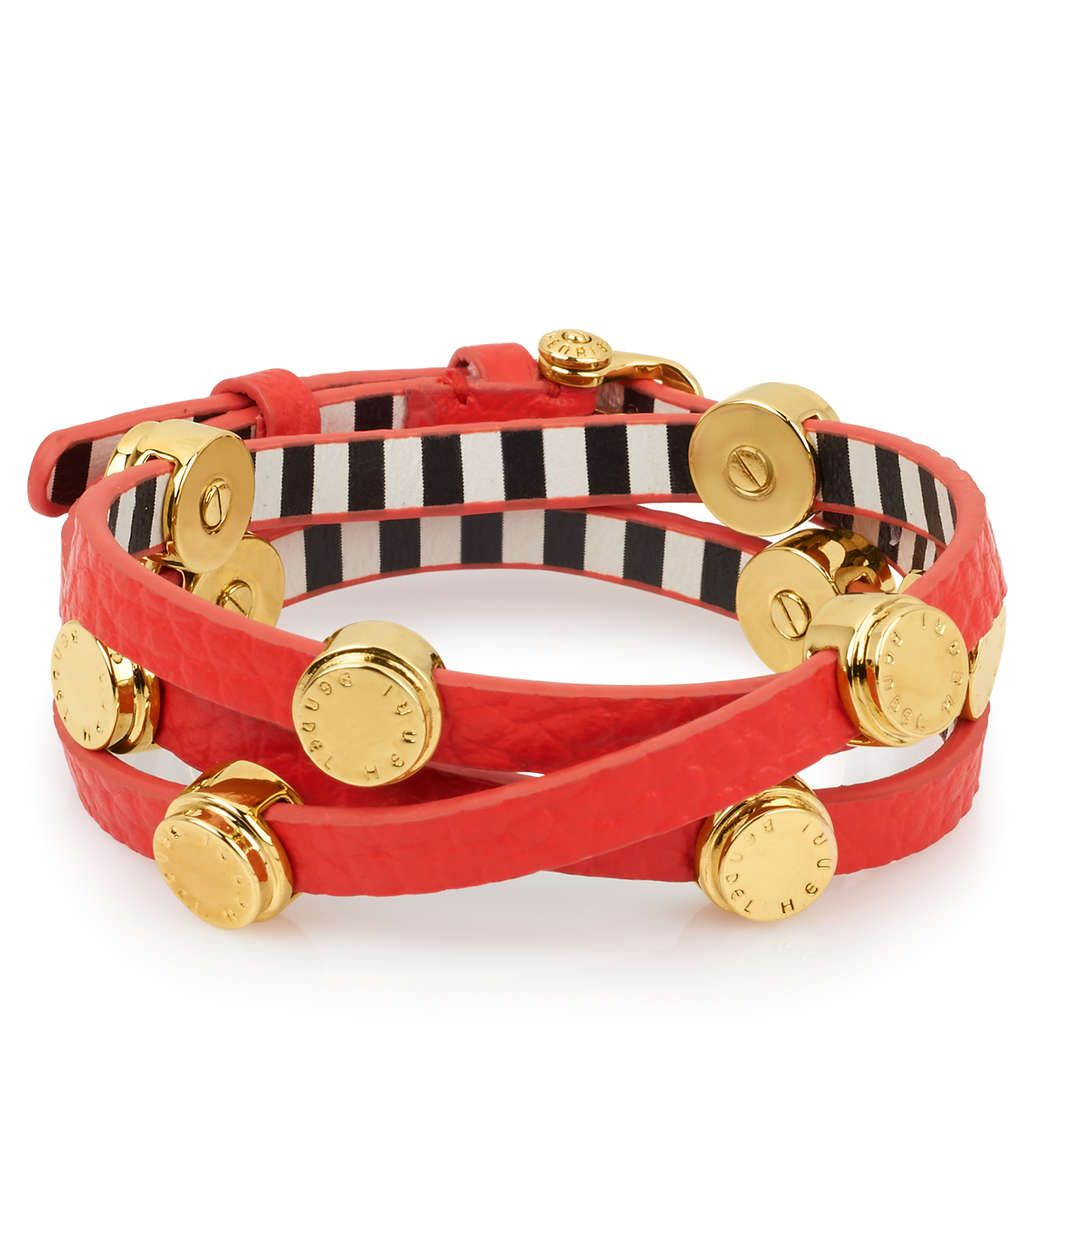 bracelet wrap triple product handup mezzaluna global goods